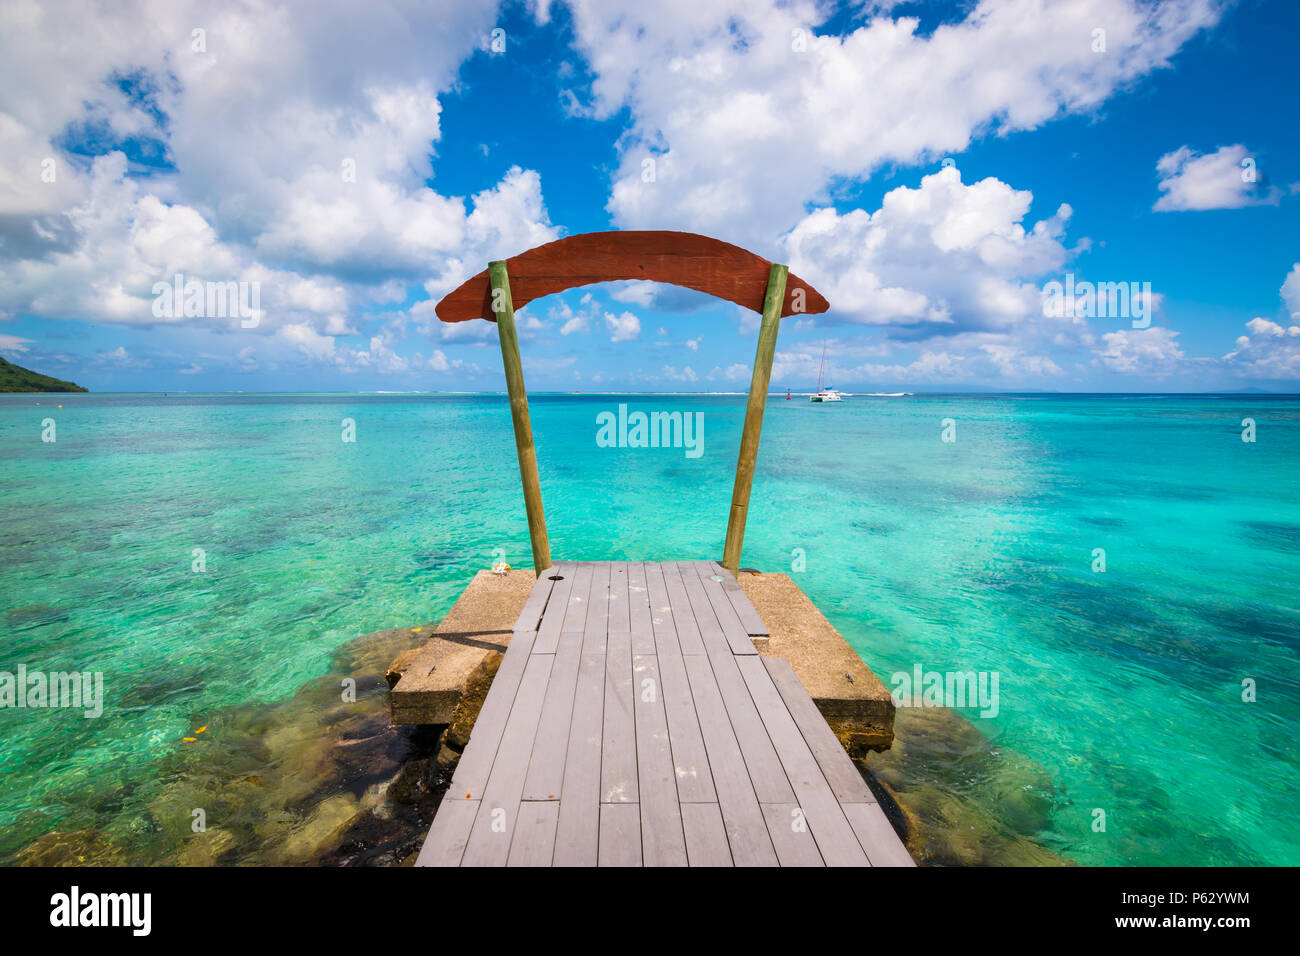 Amazing ocean view from a wooden jetty in Huahine, French Polynesia - Stock Image